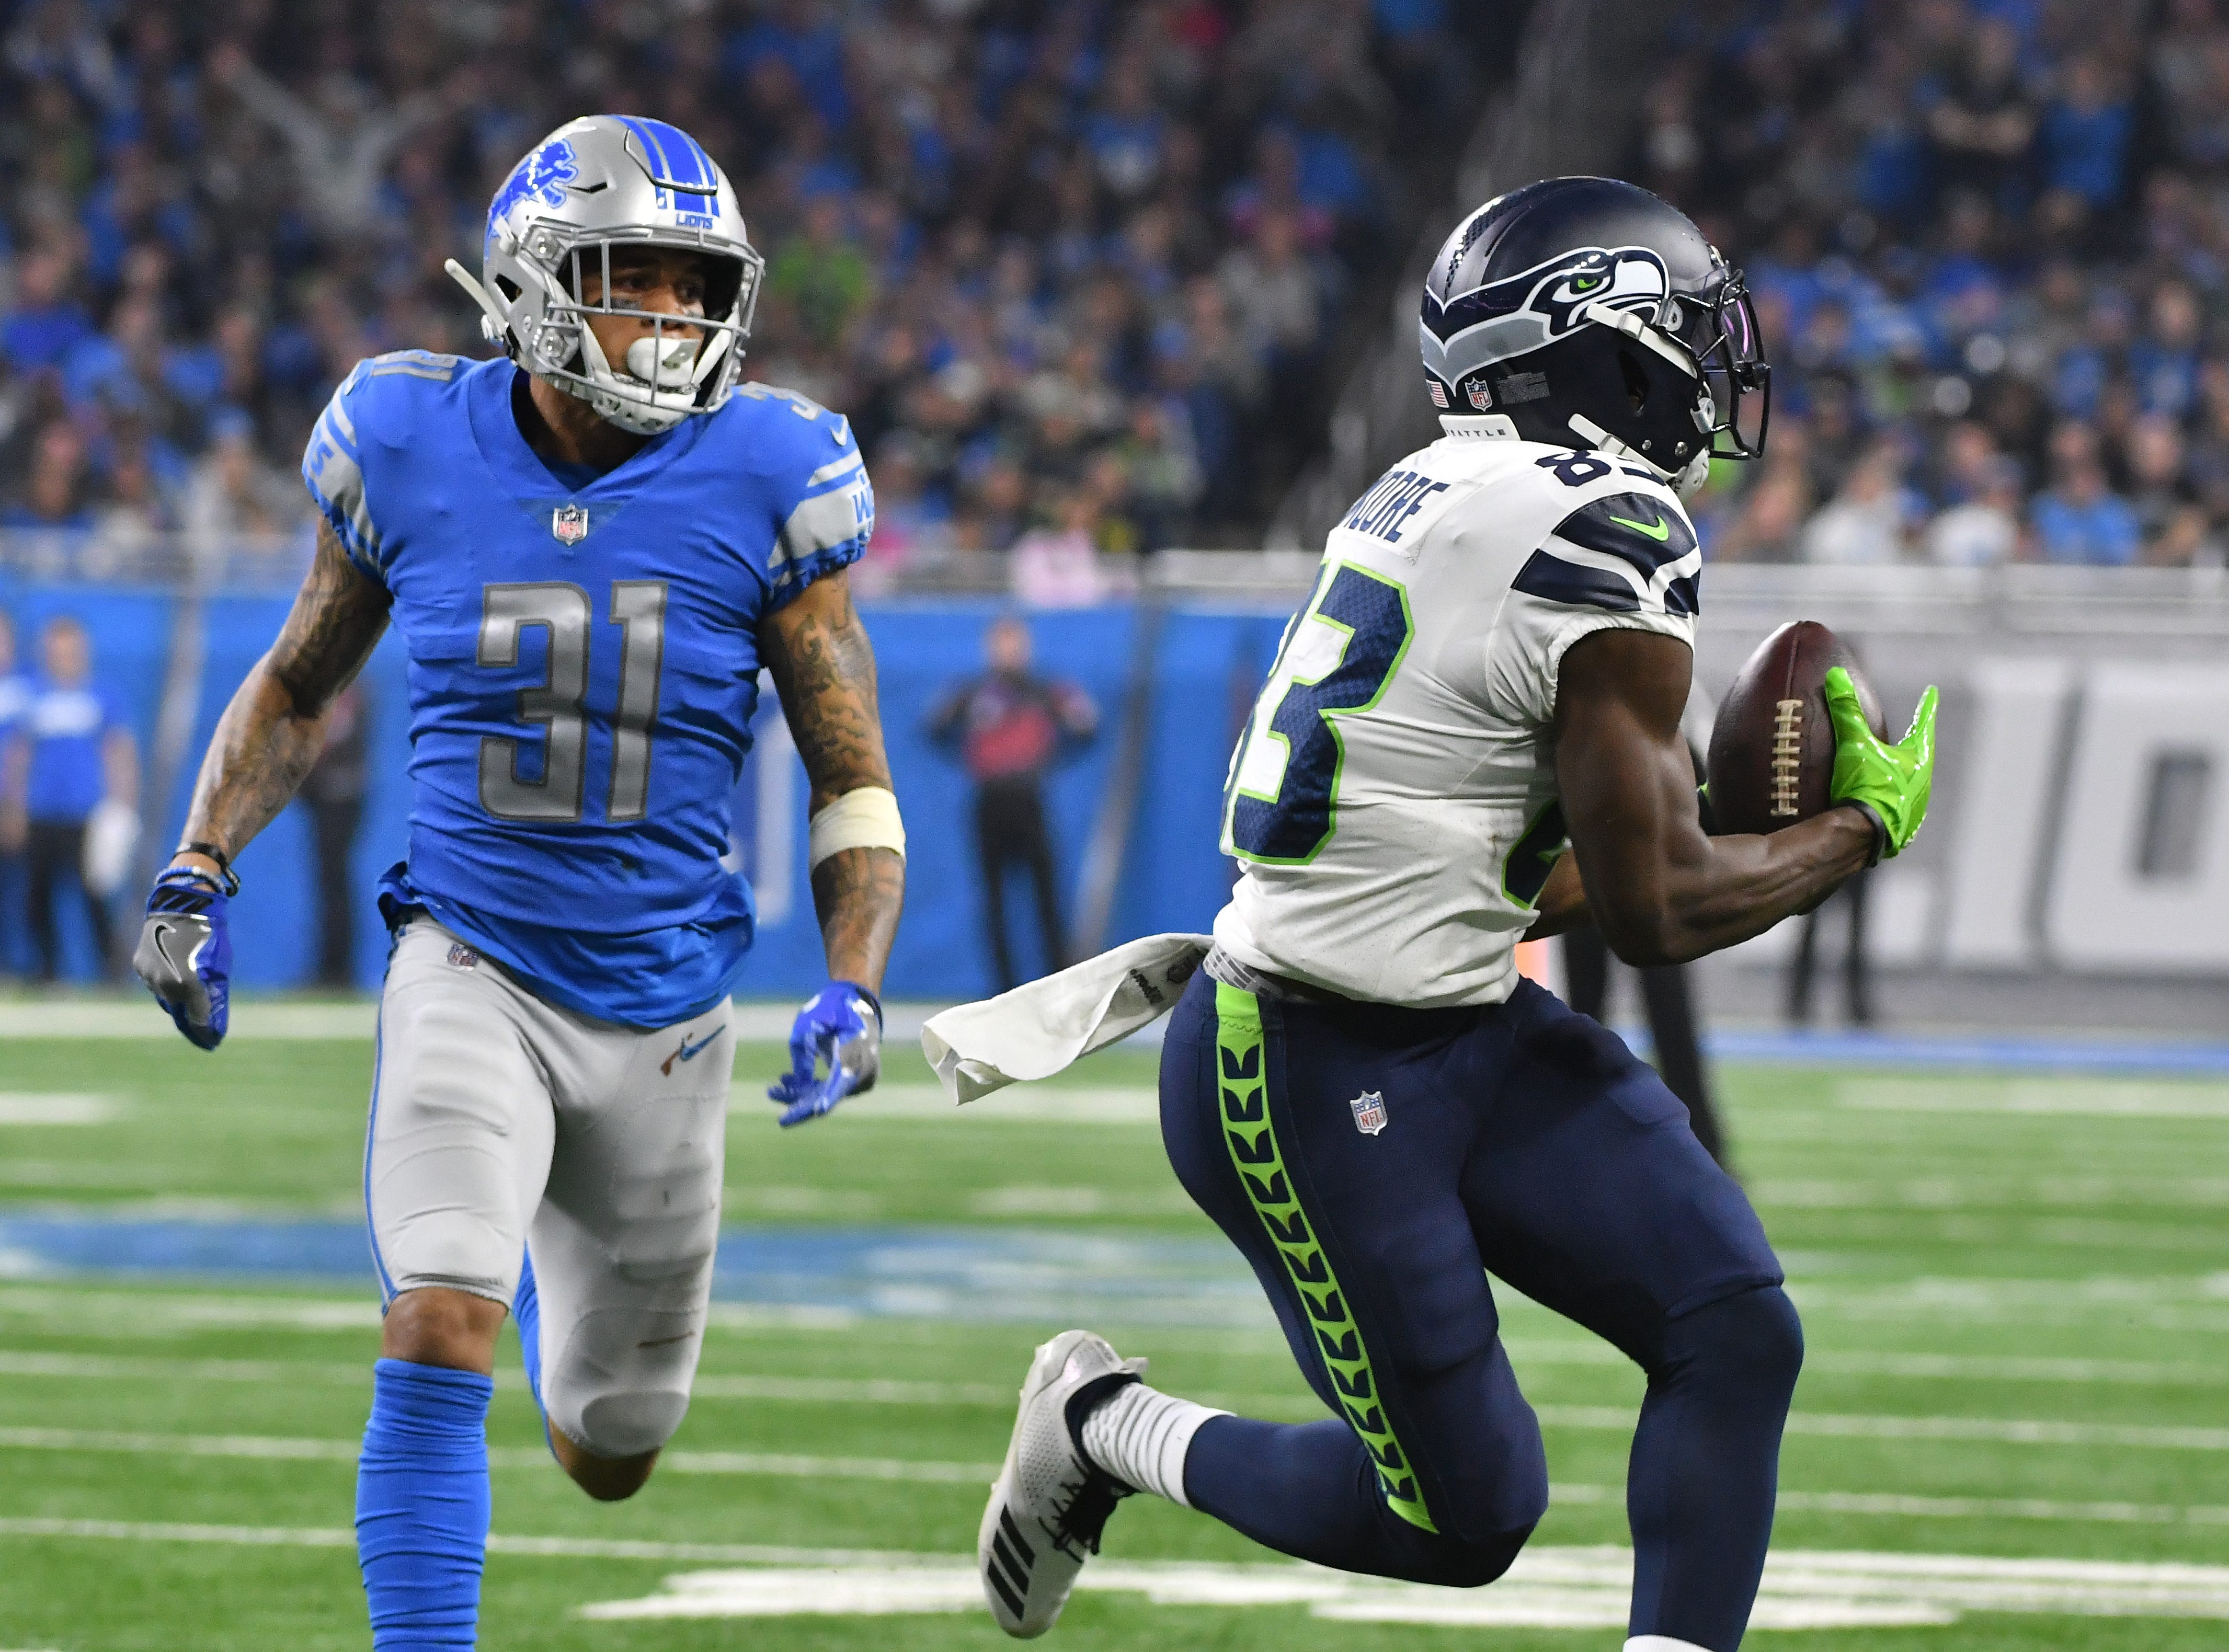 CB Teez Tabor: Tabor has been an unmitigated disaster. The second-round pick from a year ago is allowing a perfect passer rating when in coverage and has been racking up penalties at a troubling clip, drawing six flags, despite playing fewer than half as many snaps as Nevin Lawson. Grade: F